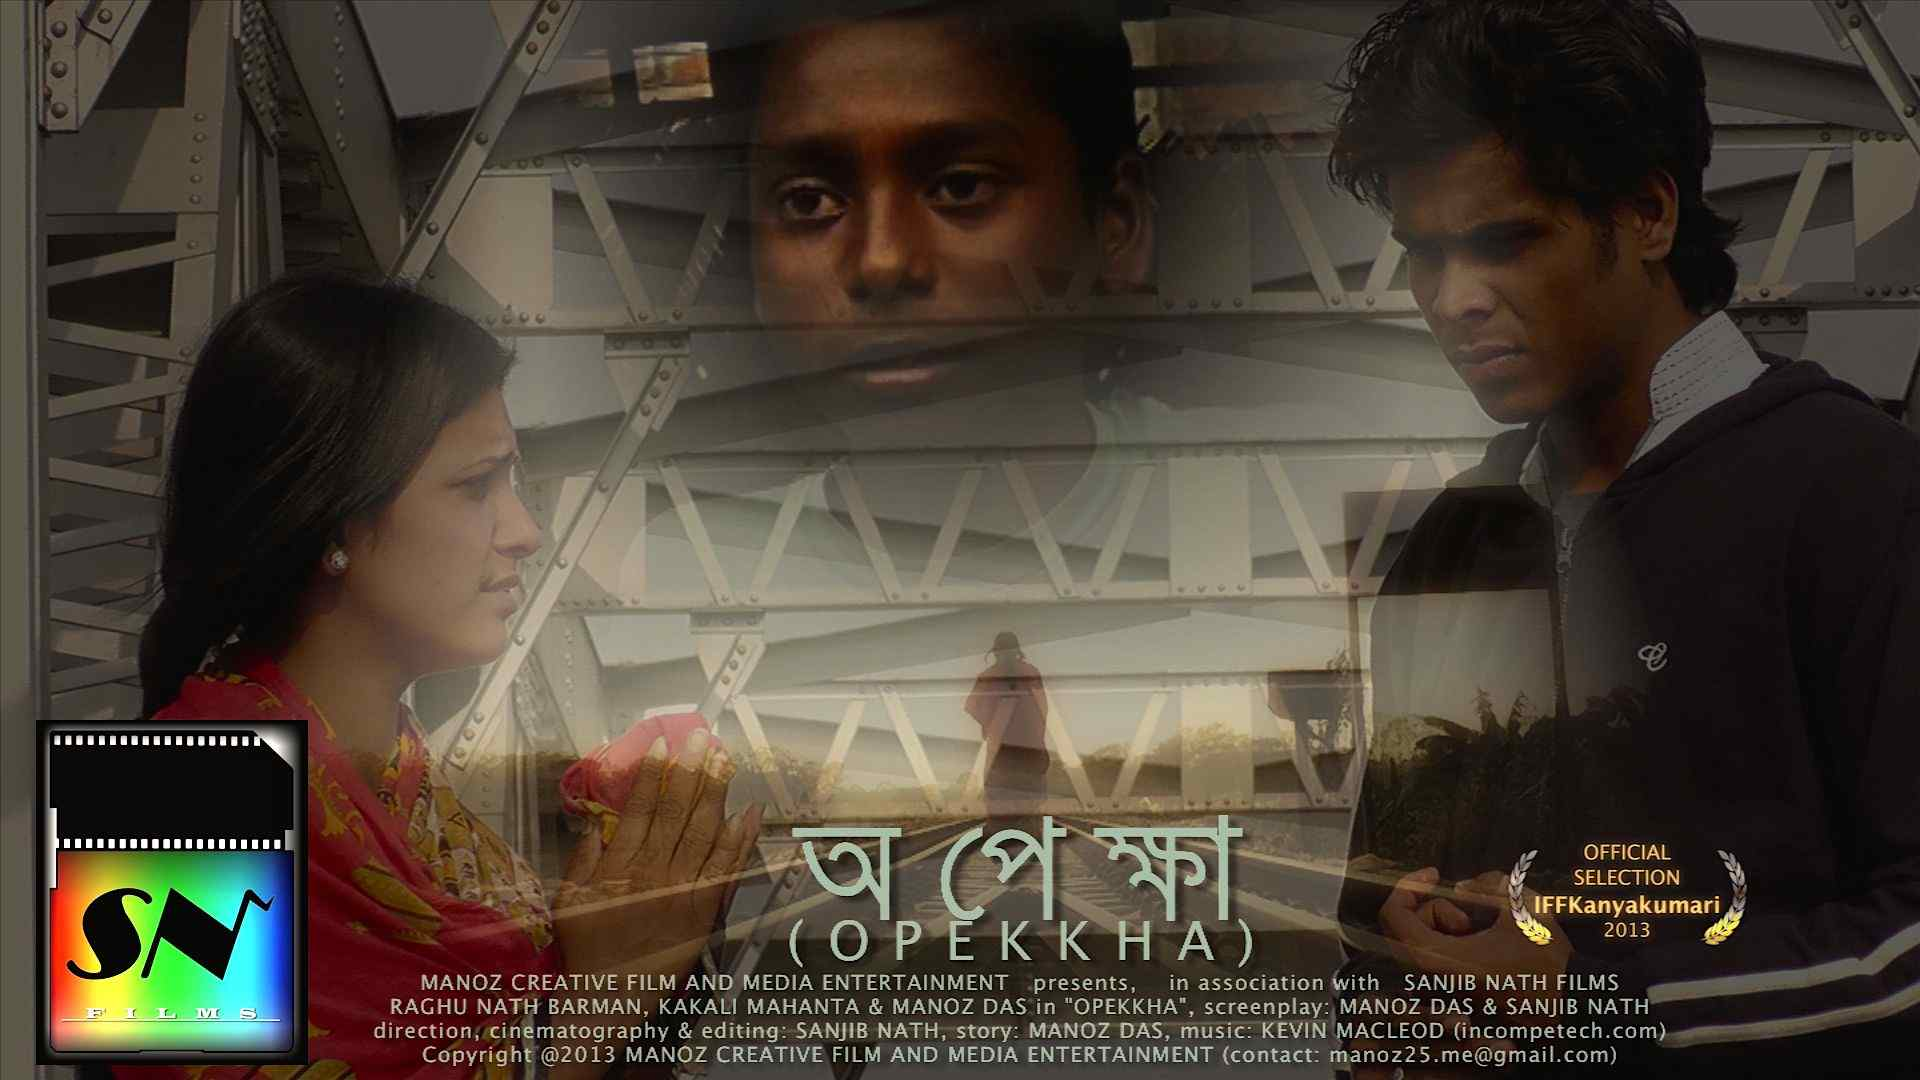 অপেক্ষা - The Waiting